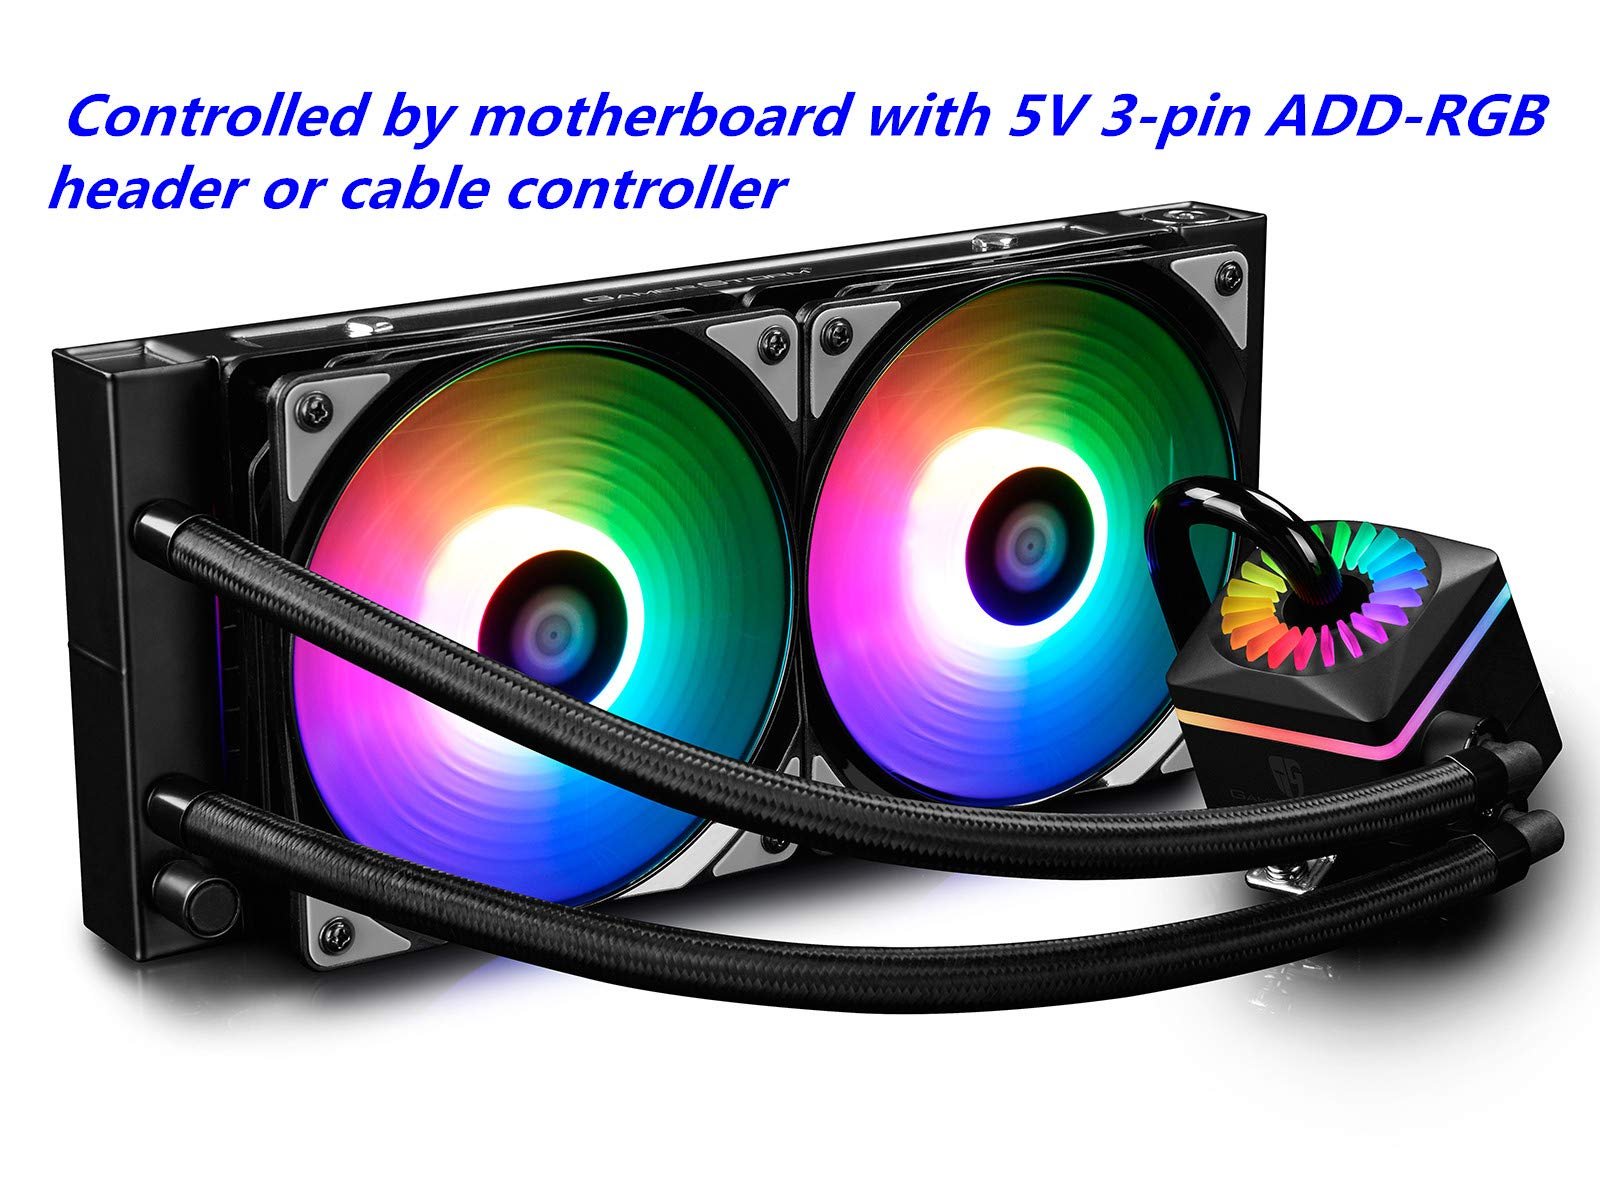 DEEP COOL Captain 240PRO Addressable RGB AIO CPU Liquid Cooler, Cable Controller and 5V ADD RGB 3-Pin Motherboard Control, Intel 115X/2066 and AMD TR4/AM4 Compatible, 3-Year Warranty by DEEP COOL